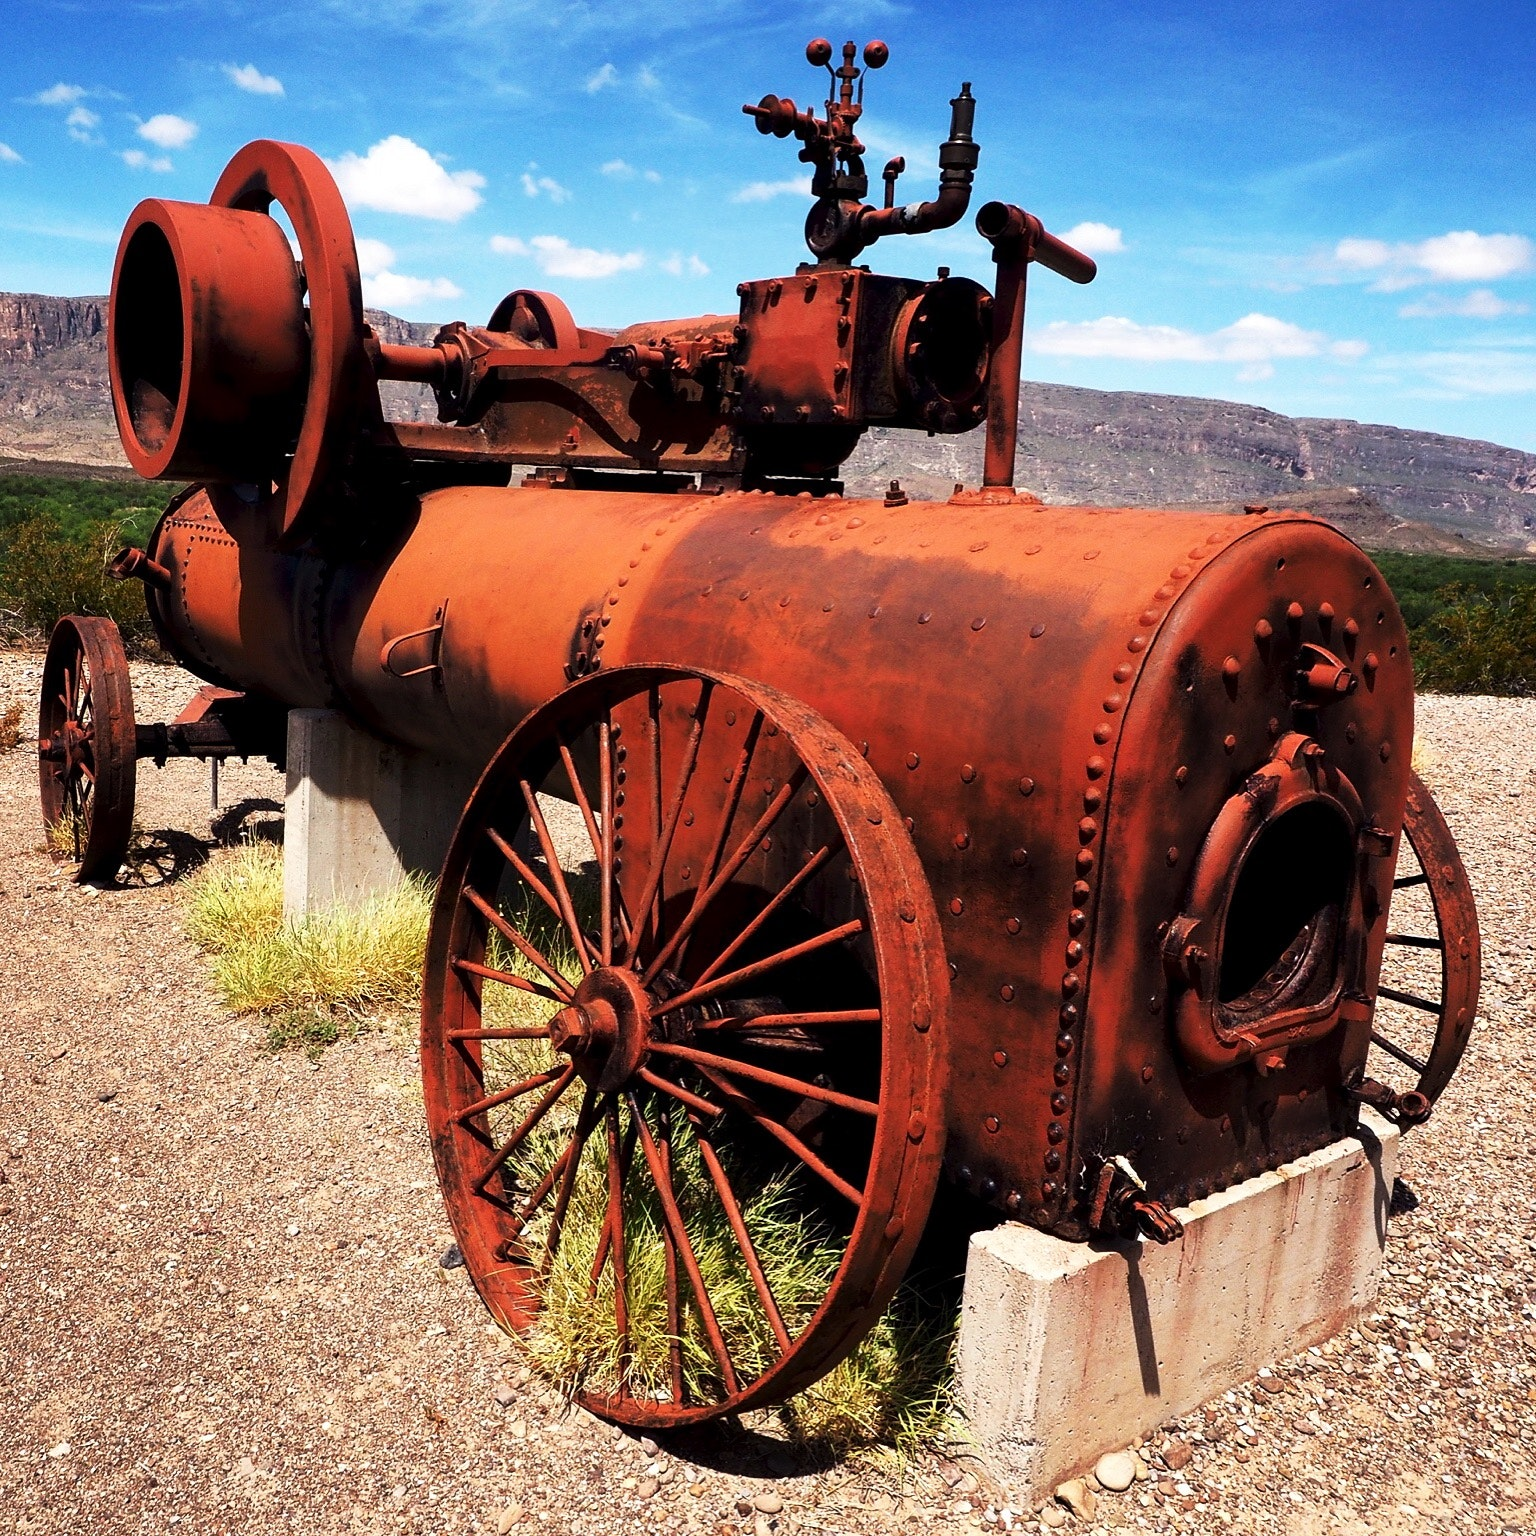 Red Metallic Vintage Machine, Abandoned, Rocks, Weapon, Vintage, HQ Photo